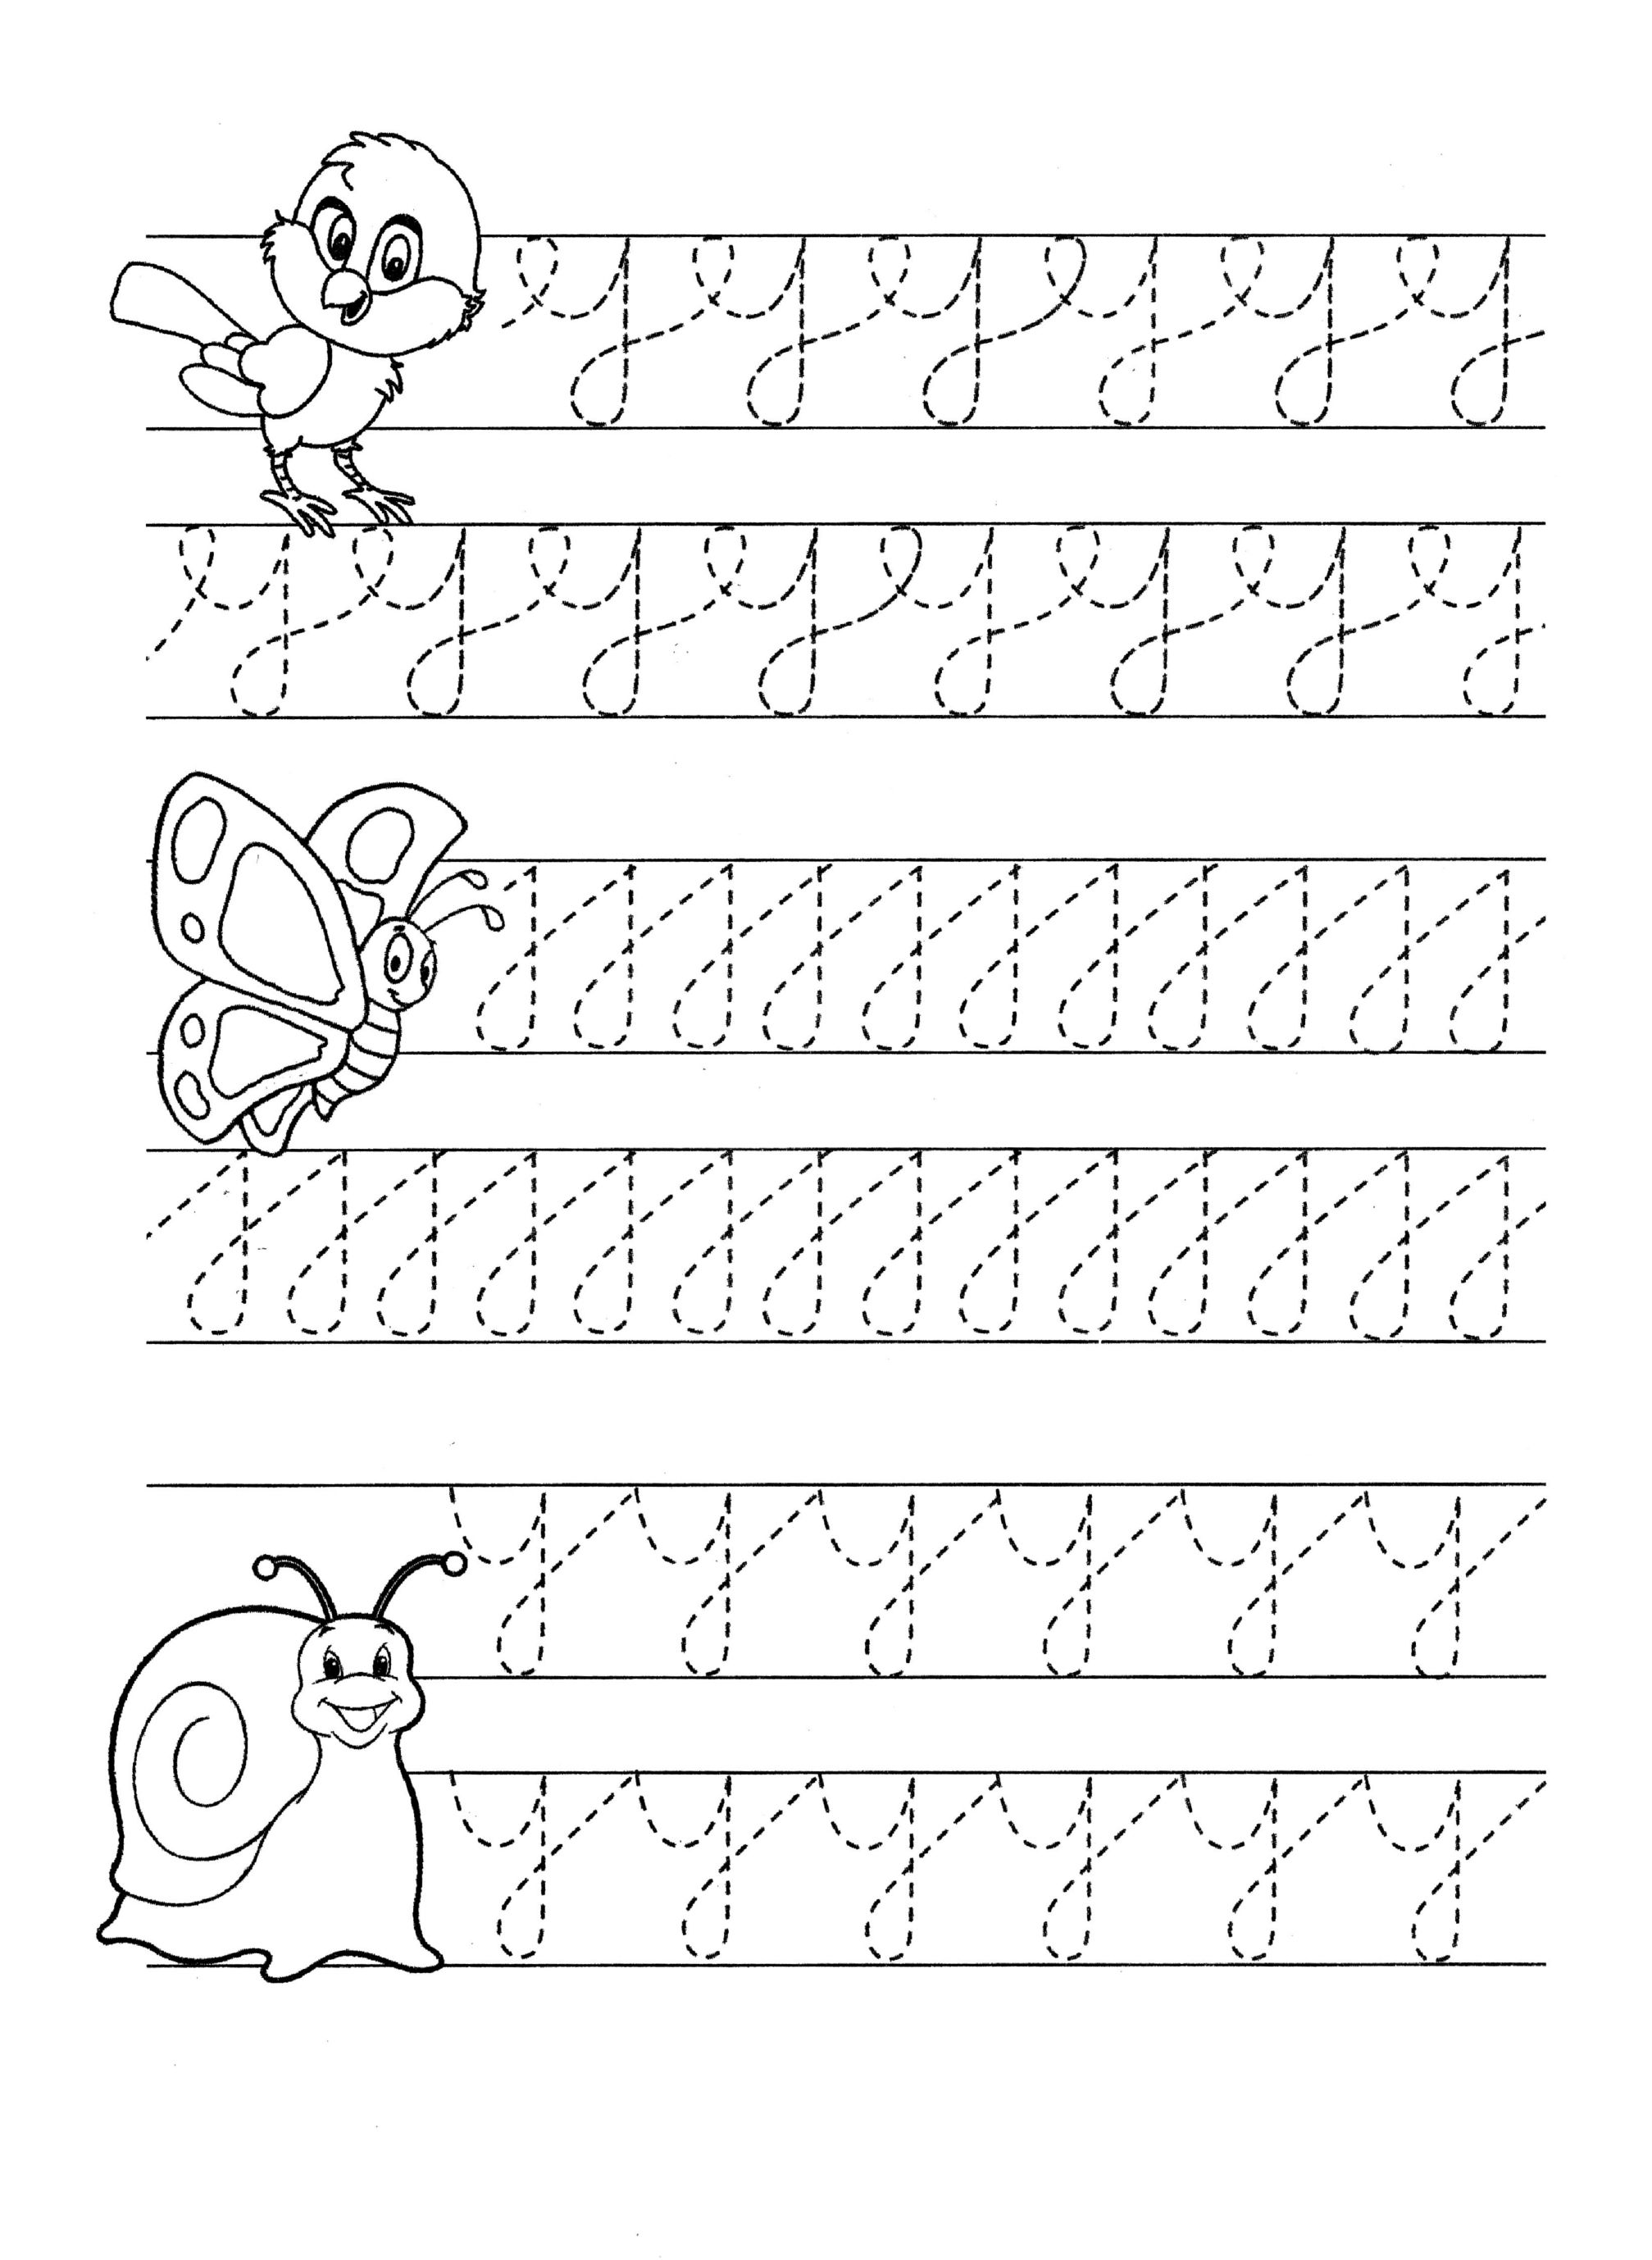 worksheet fine motor skills worksheets grass fedjp